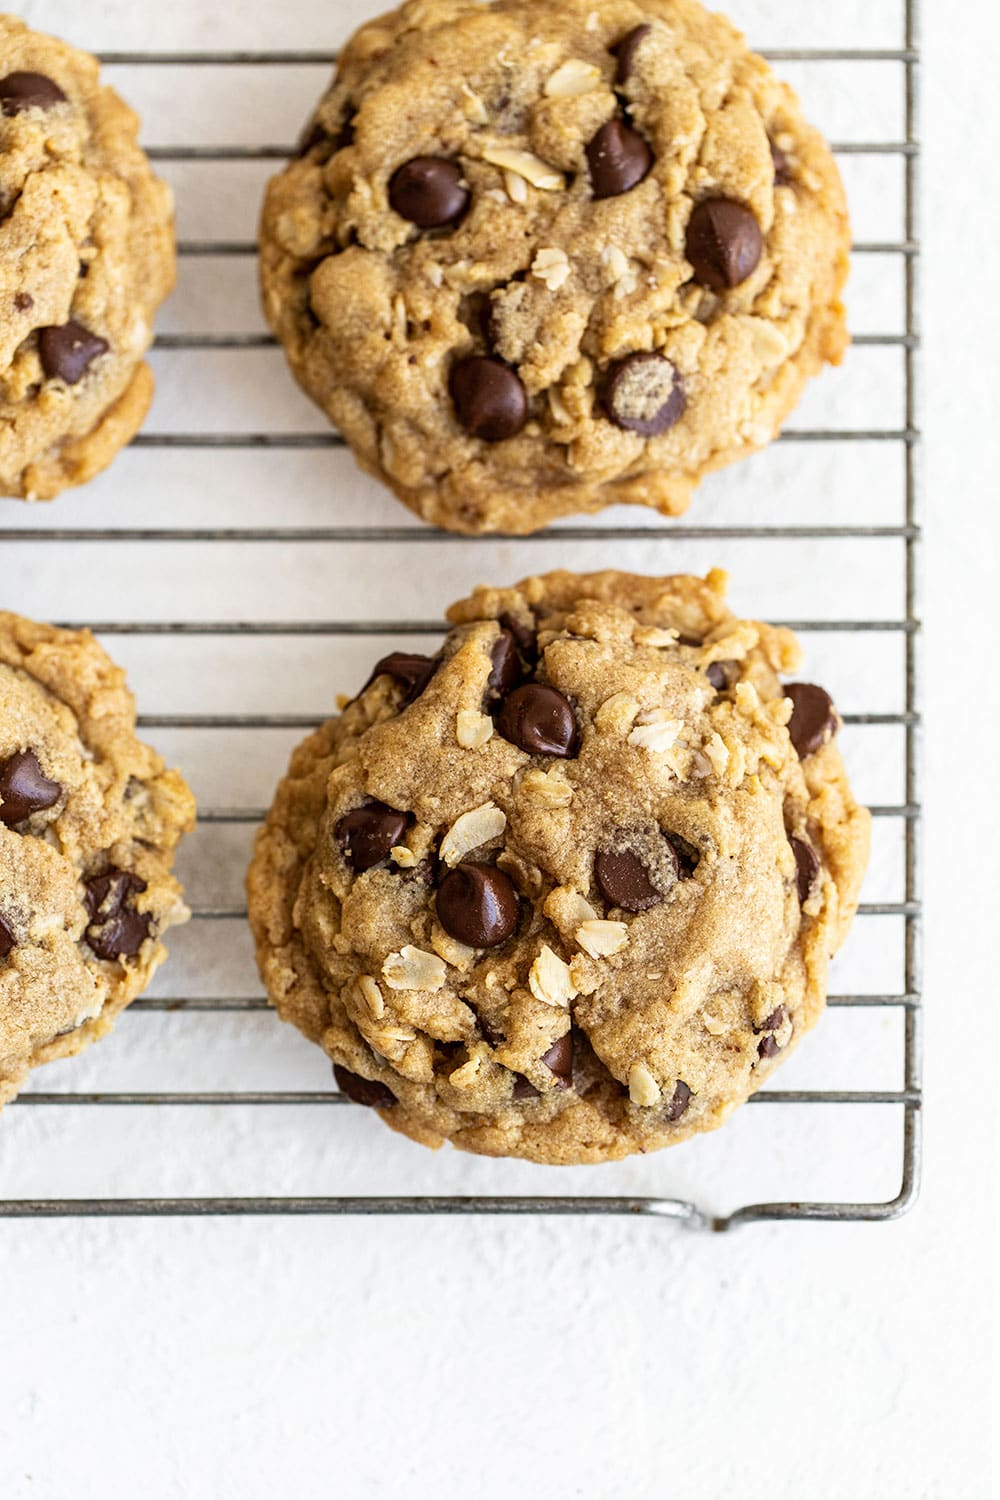 soft peanut butter oatmeal chocolate chip cookies on a cooling rack